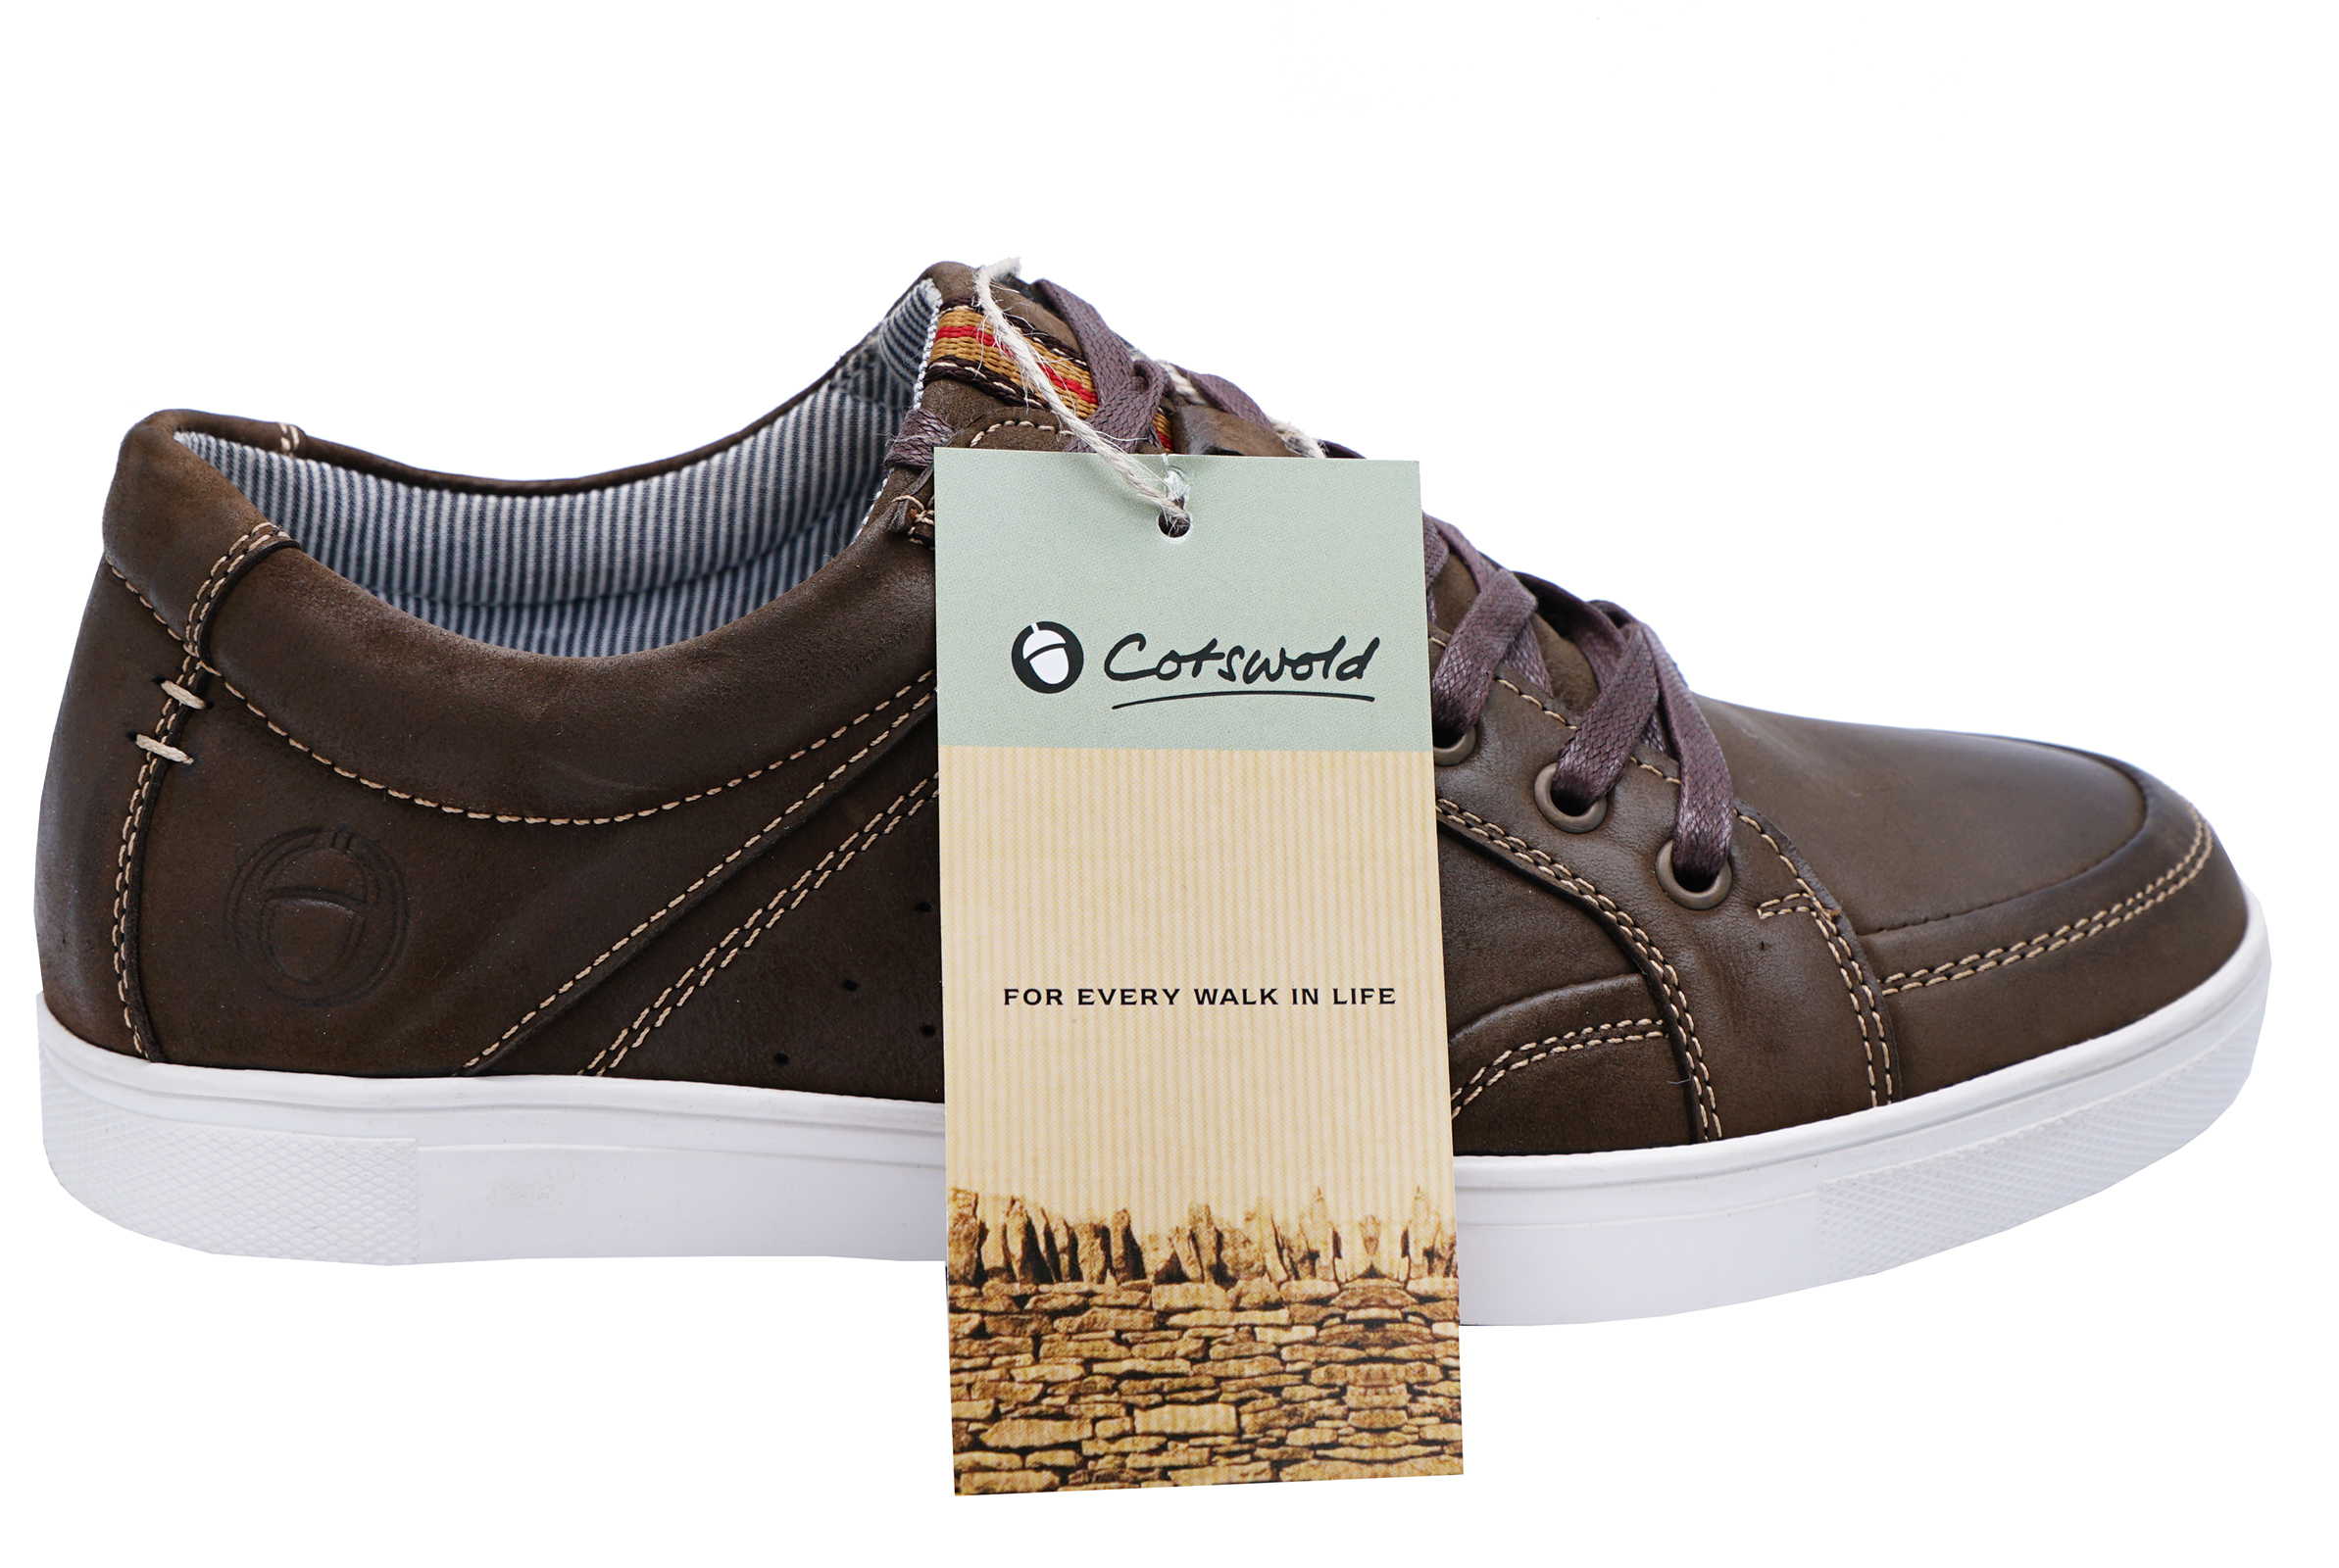 MENS-BROWN-LEATHER-COTSWOLD-LACE-UP-CASUAL-TRAINERS-PUMPS-COMFY-SHOES-UK-10-12 thumbnail 4